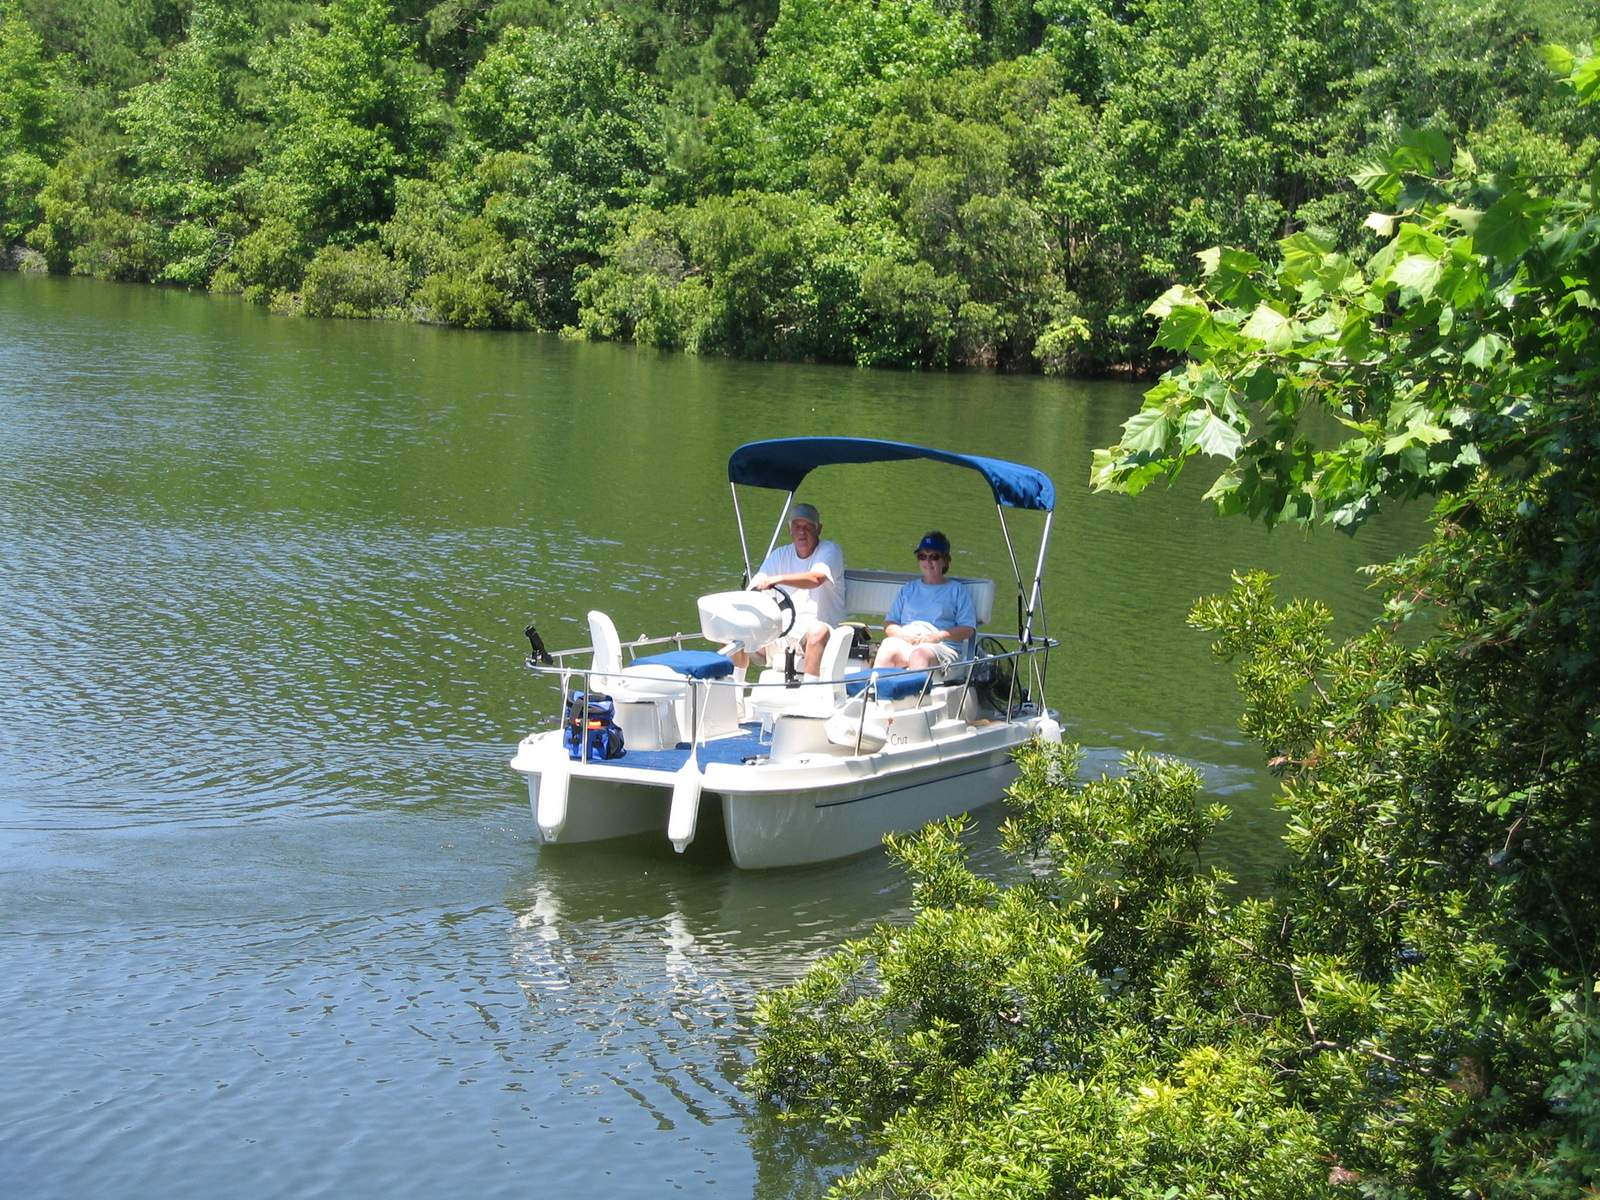 lakefront property, lots and homes - deck boat